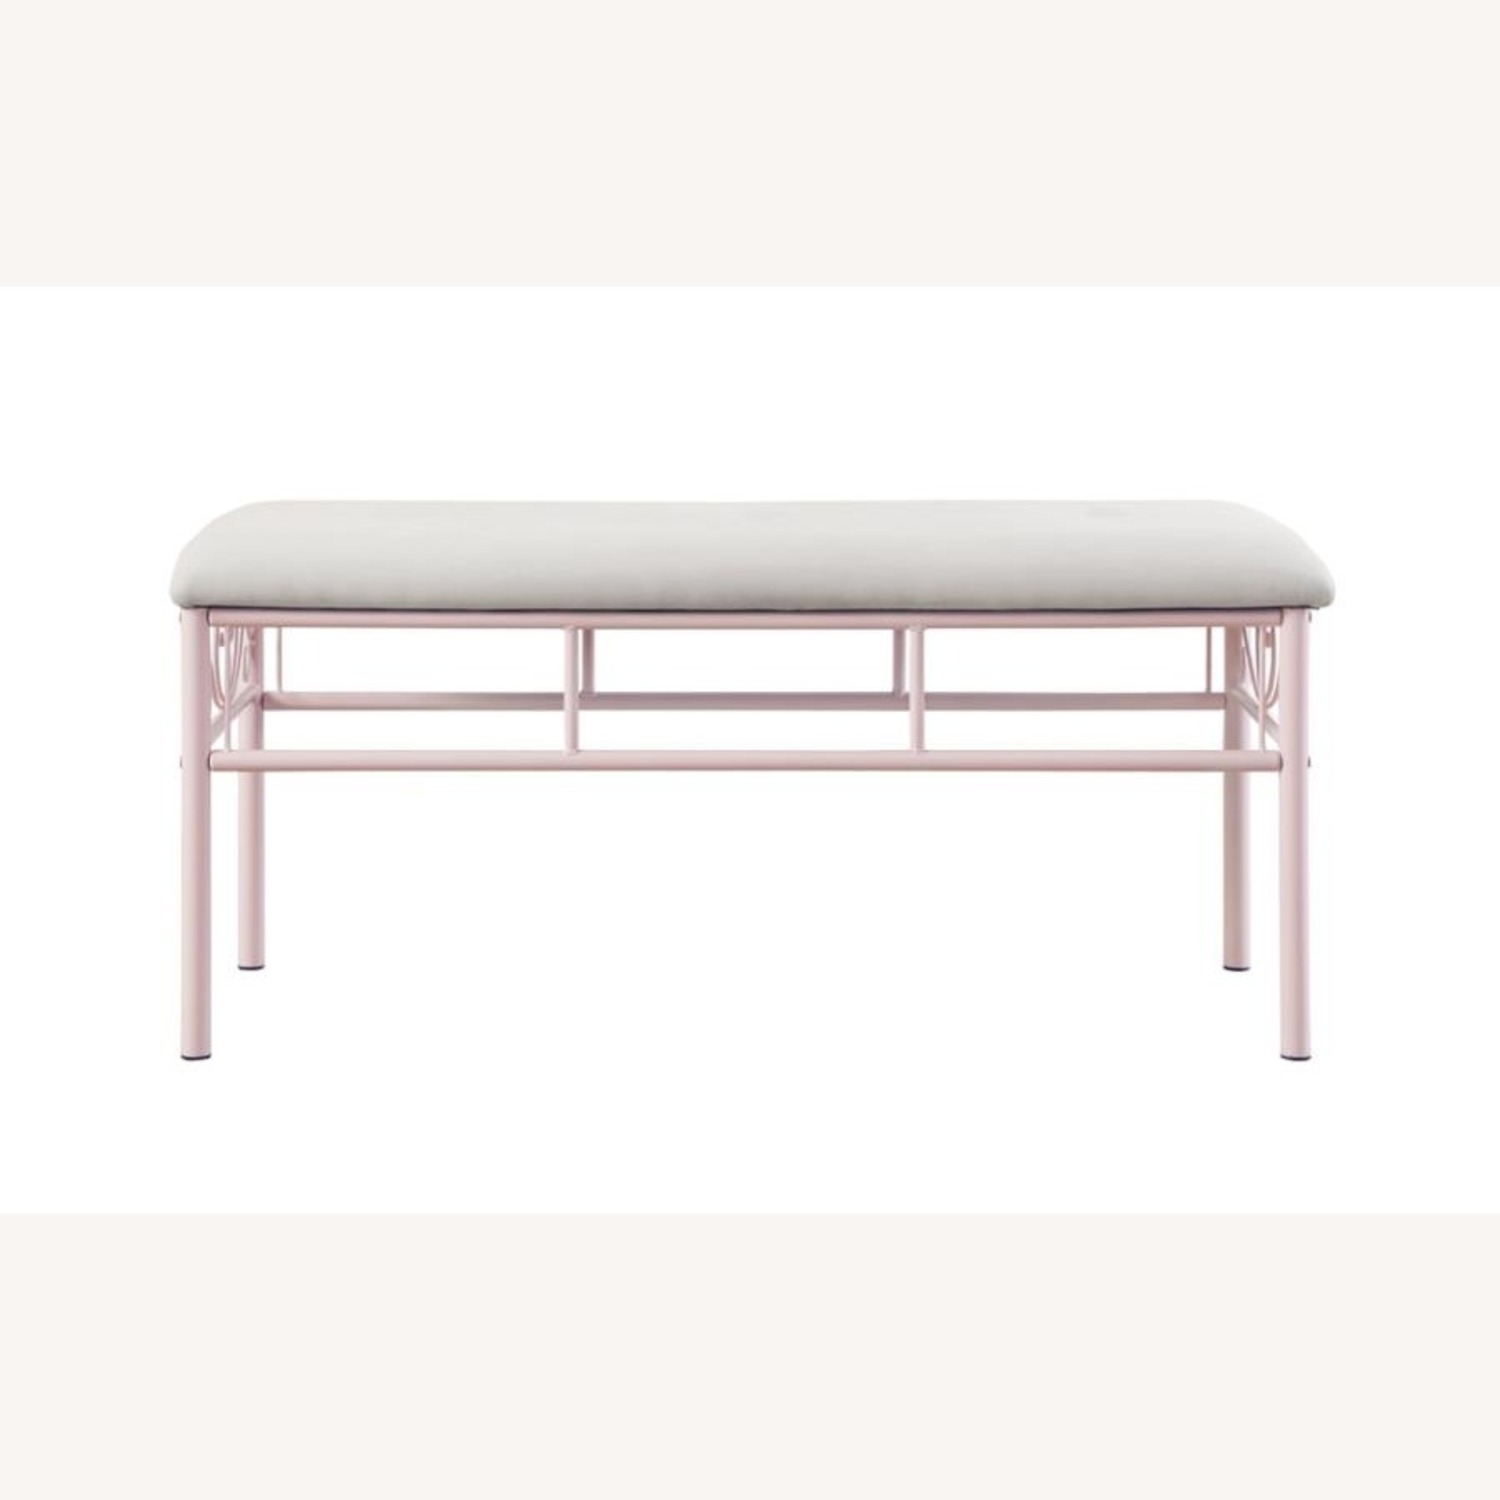 Bench In Powder Pink W/ Ivory Fabric Upholstery - image-1